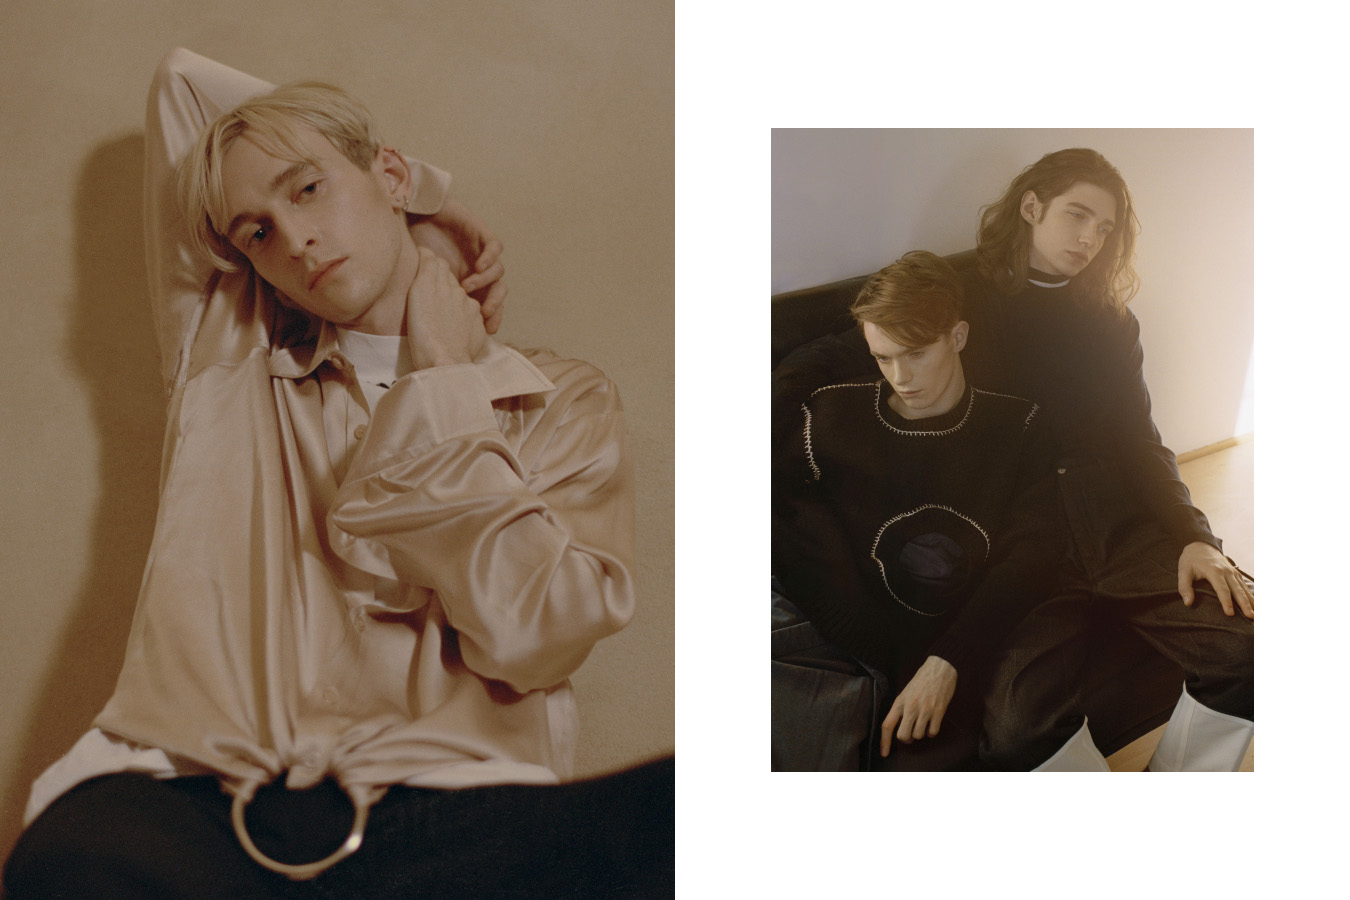 Lewis wears turtleneck   OFF­‐WHITE   shirt   MARTINE ROSE   pants   SAINT LAURENT  . Harry wears top   ACNE STUDIOS   jumper   CRAIG GREEN   pants   LOEWE  . Johnny wears sweater   PAUL SMITH   pants   LOEWE